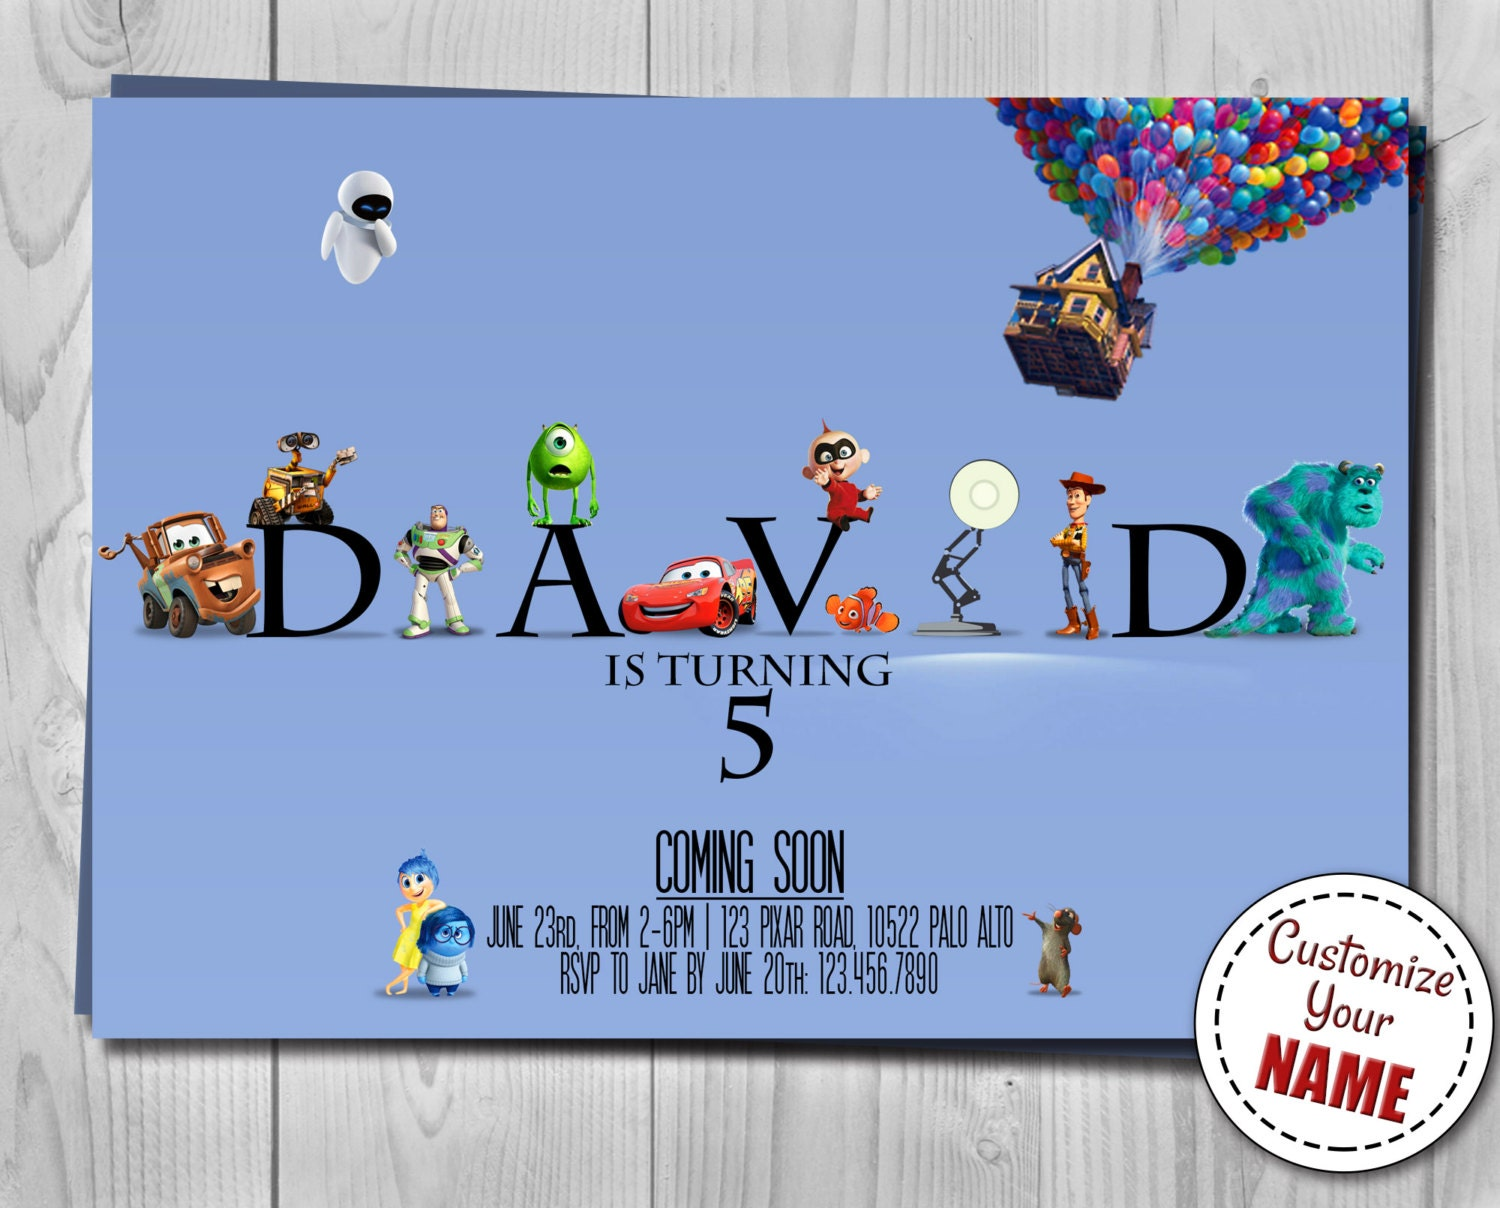 Pixar Logo Invitation Disney Birthday Invite Customizable Name - Birthday invitations inside out